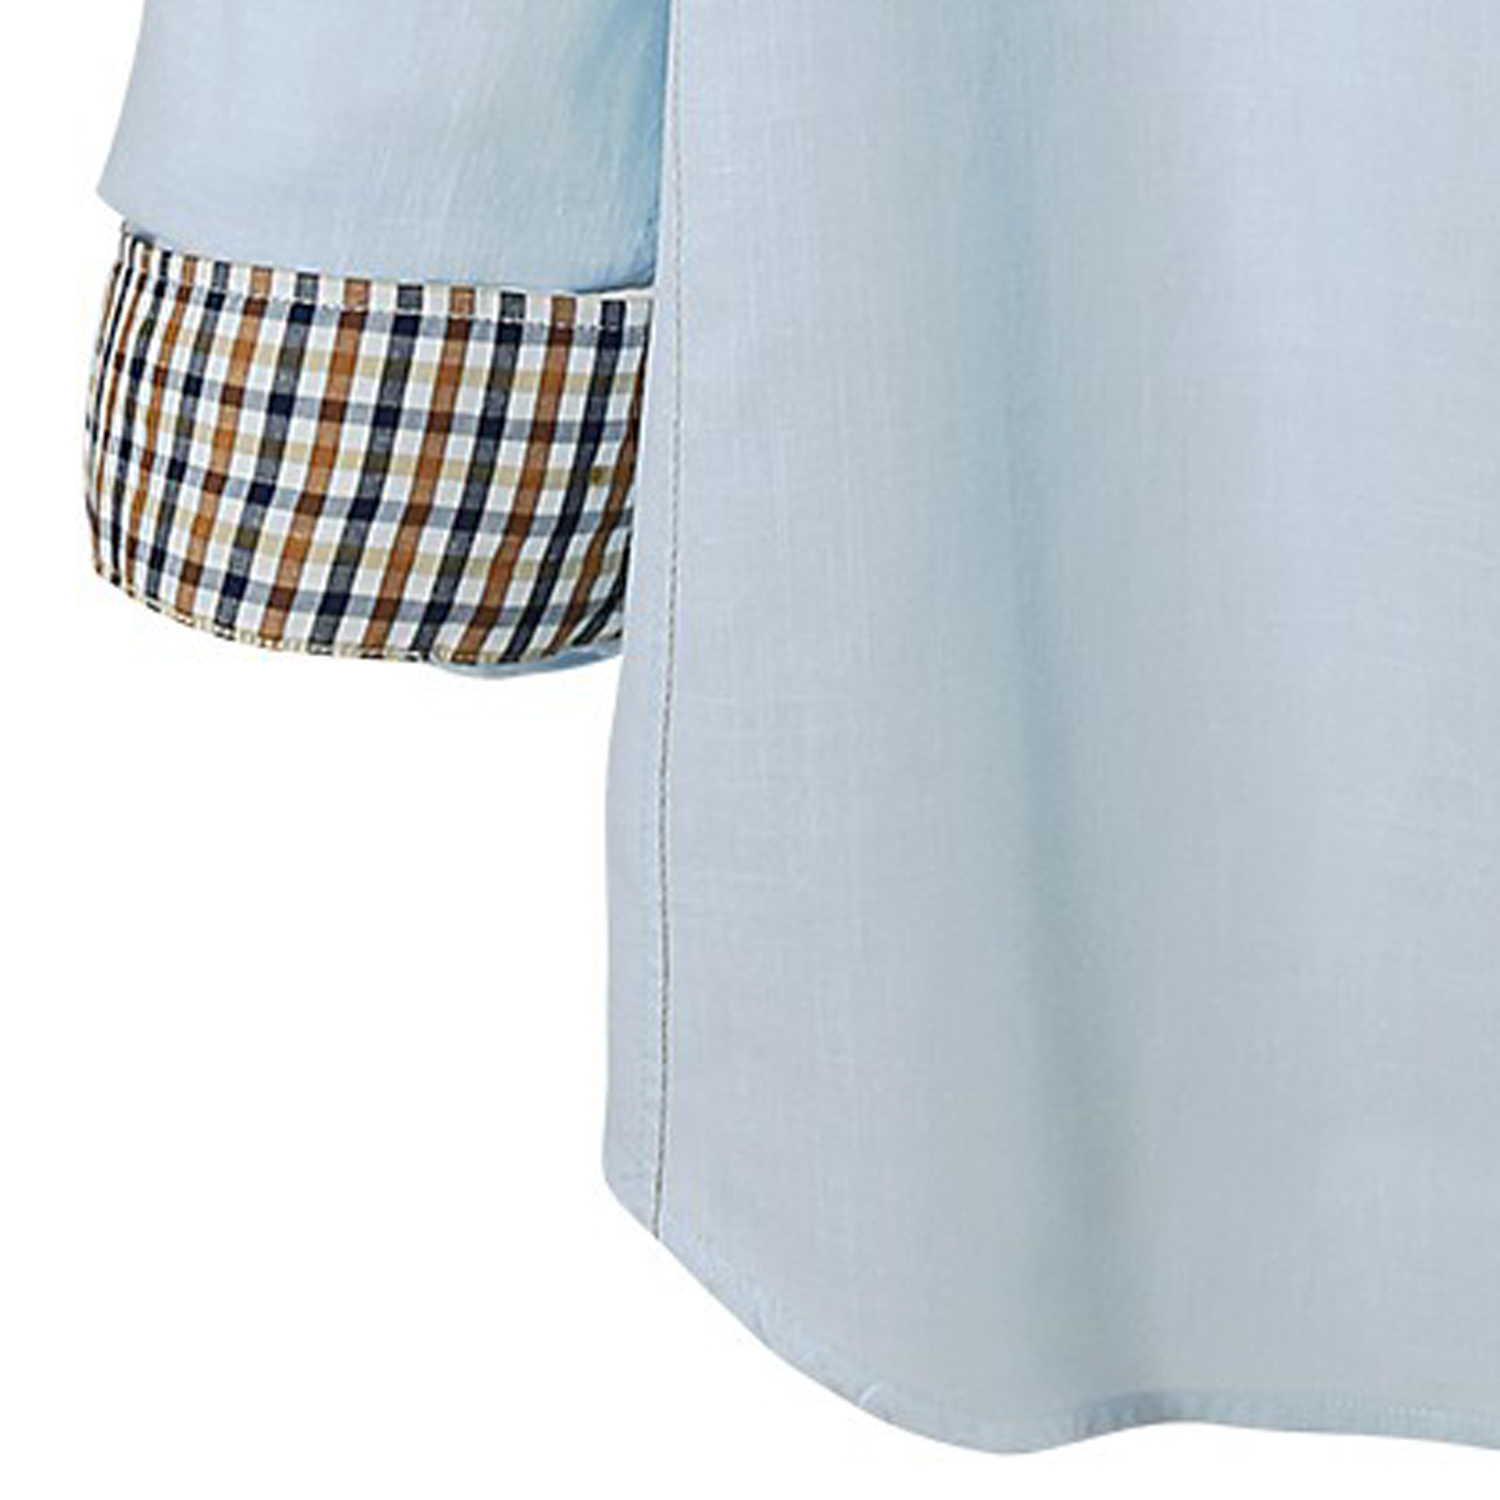 Detail Image to Shirt in light blue by Lavecchia in oversizes up to 7XL